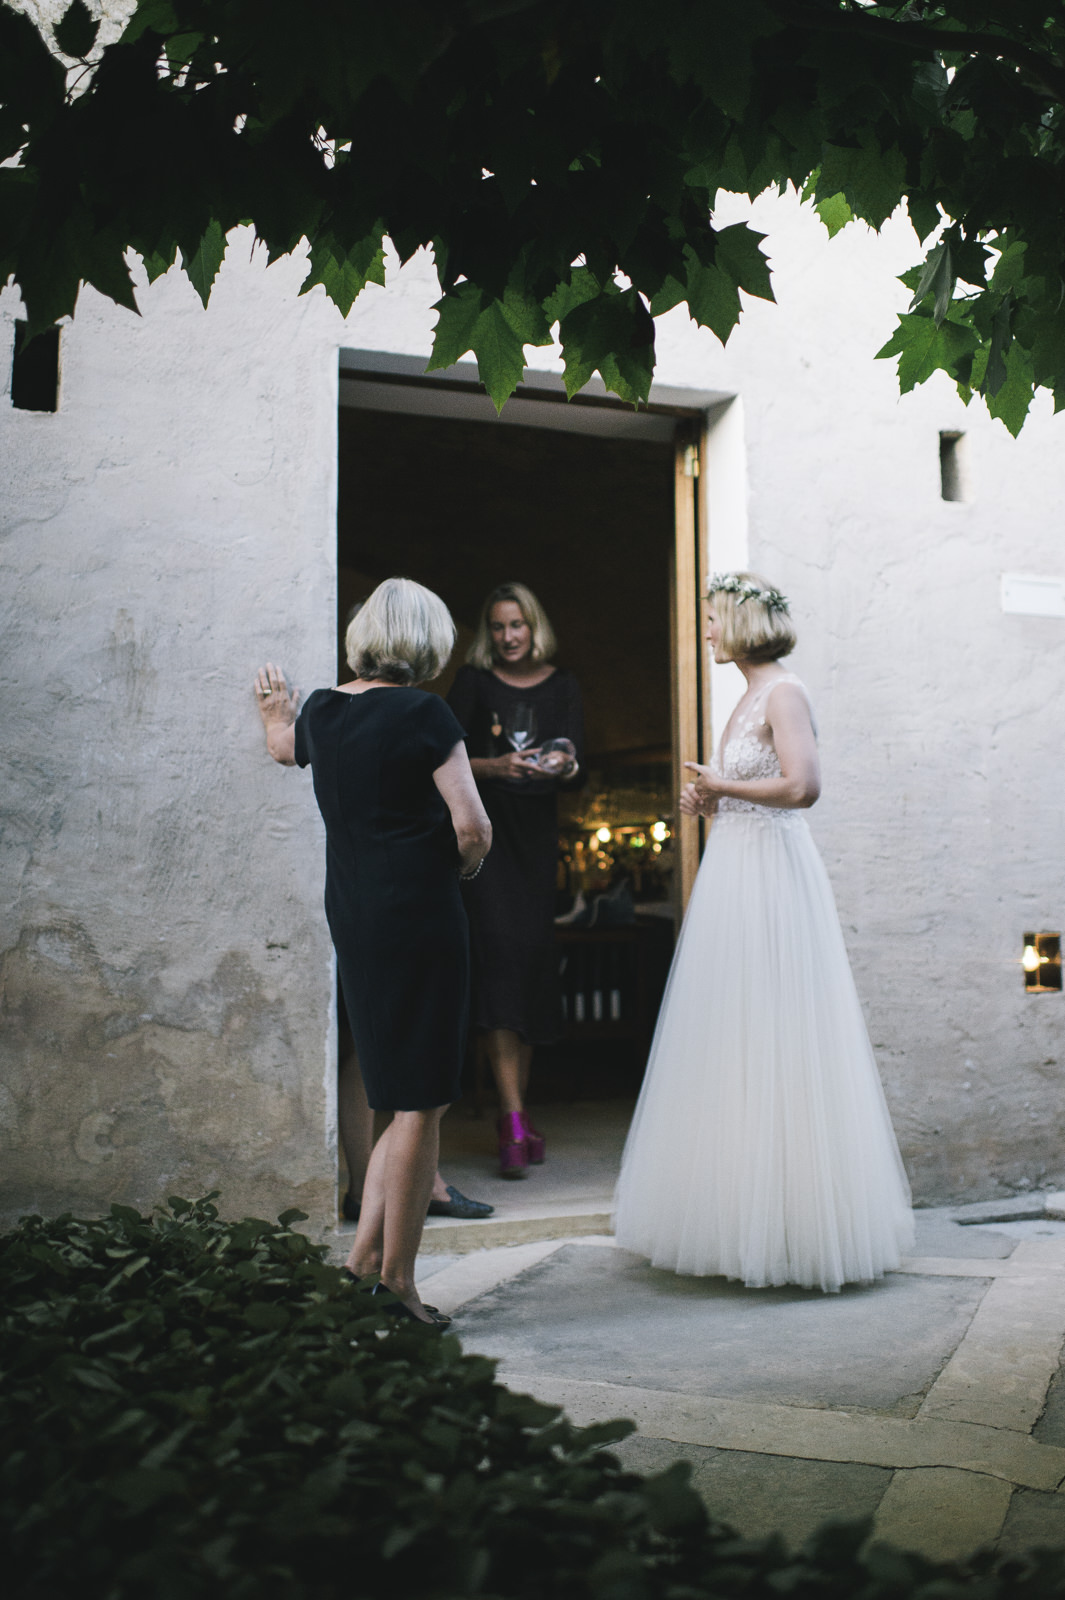 the bride and other guests standing by a big door and talking